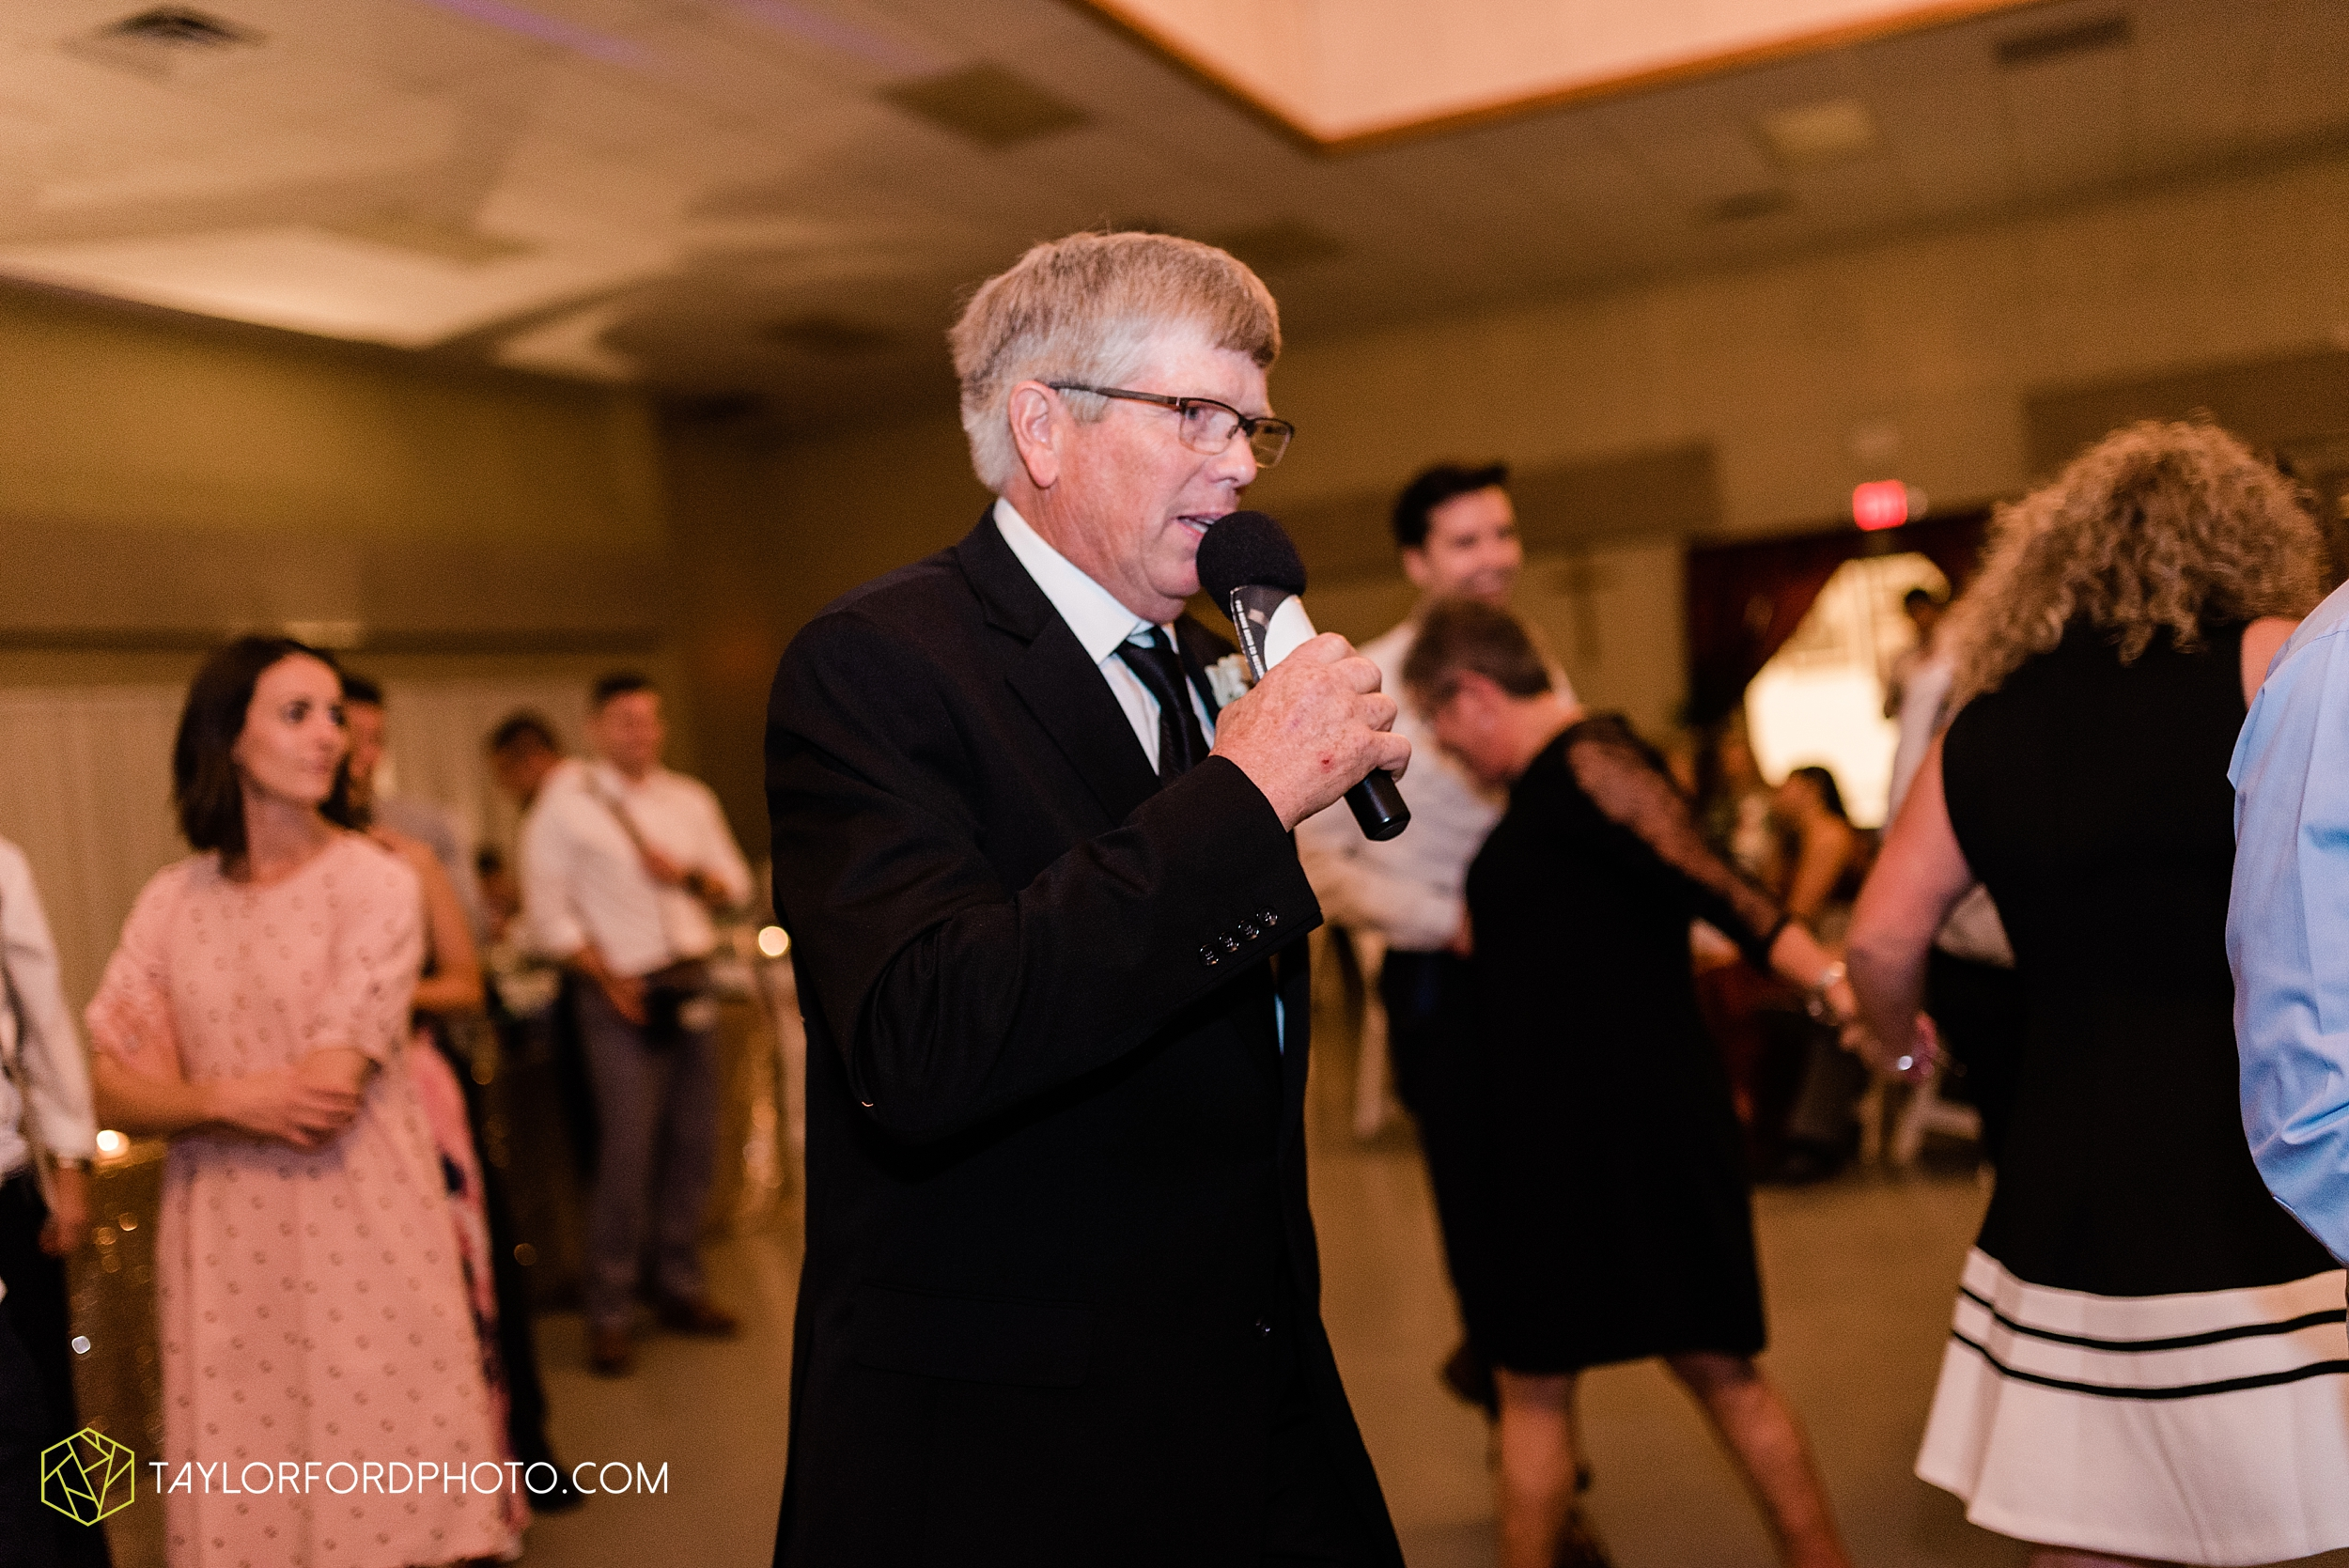 gayle-rayman-mike-steele-ottoville-ohio-wedding-immaculate-conception-parish-center-wedding-sycamore-lake-winery-wannamachers-photographer-taylor-ford-photography_0448.jpg